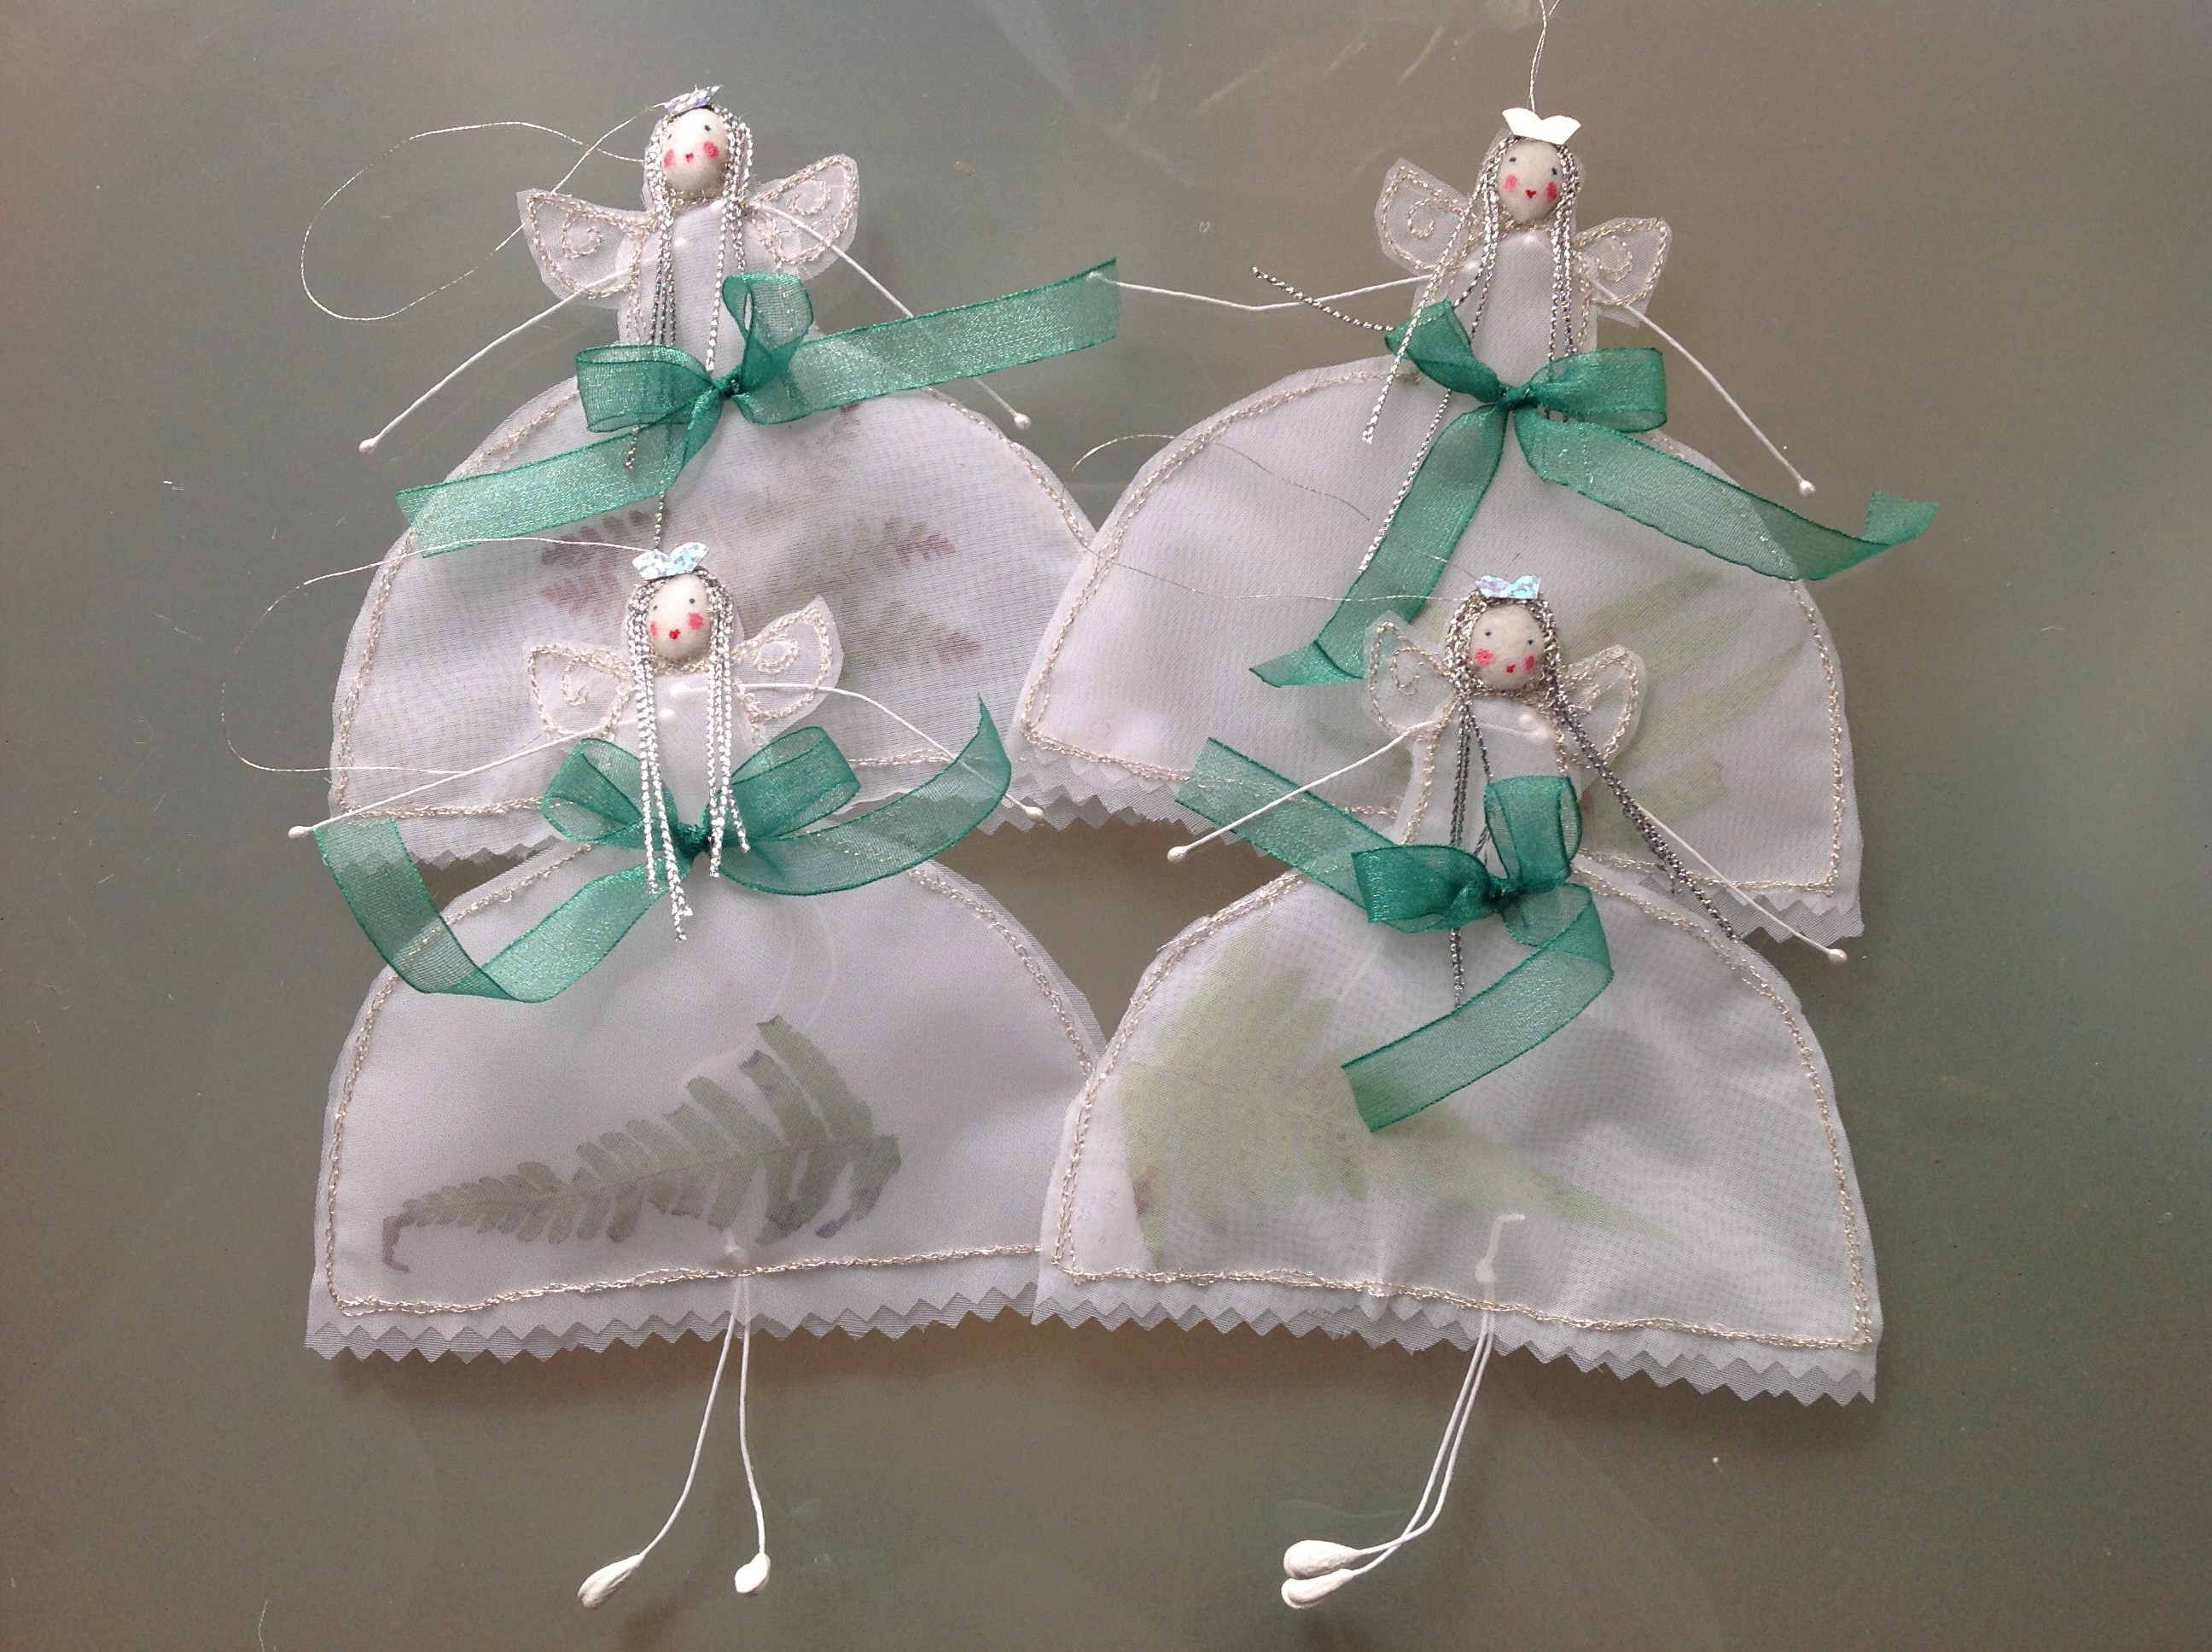 14cm high transparent stiff white organdie fairies with fern/evergreen dried leaves inserted. £9.50 including postage.